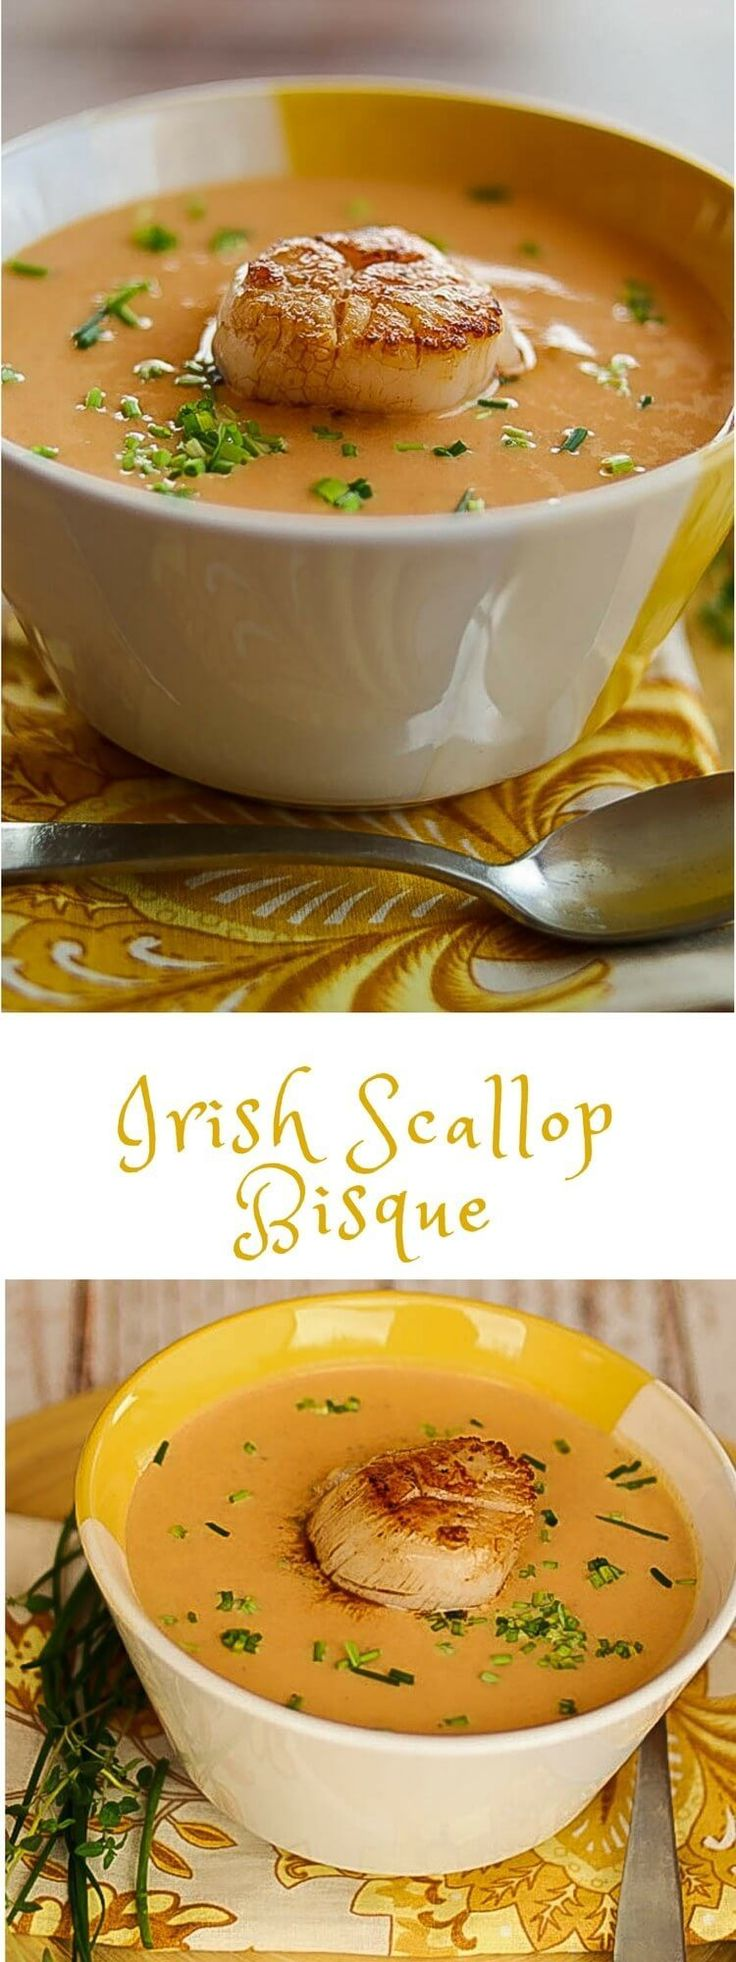 Irish Scallop Bisque - Luxurious flavors abound in this creamy bisque! It's perfect as an elegant starter course, or a light main course with bread and a salad... Scallop bisque recipe   Bisque   seafood soups   starter courses